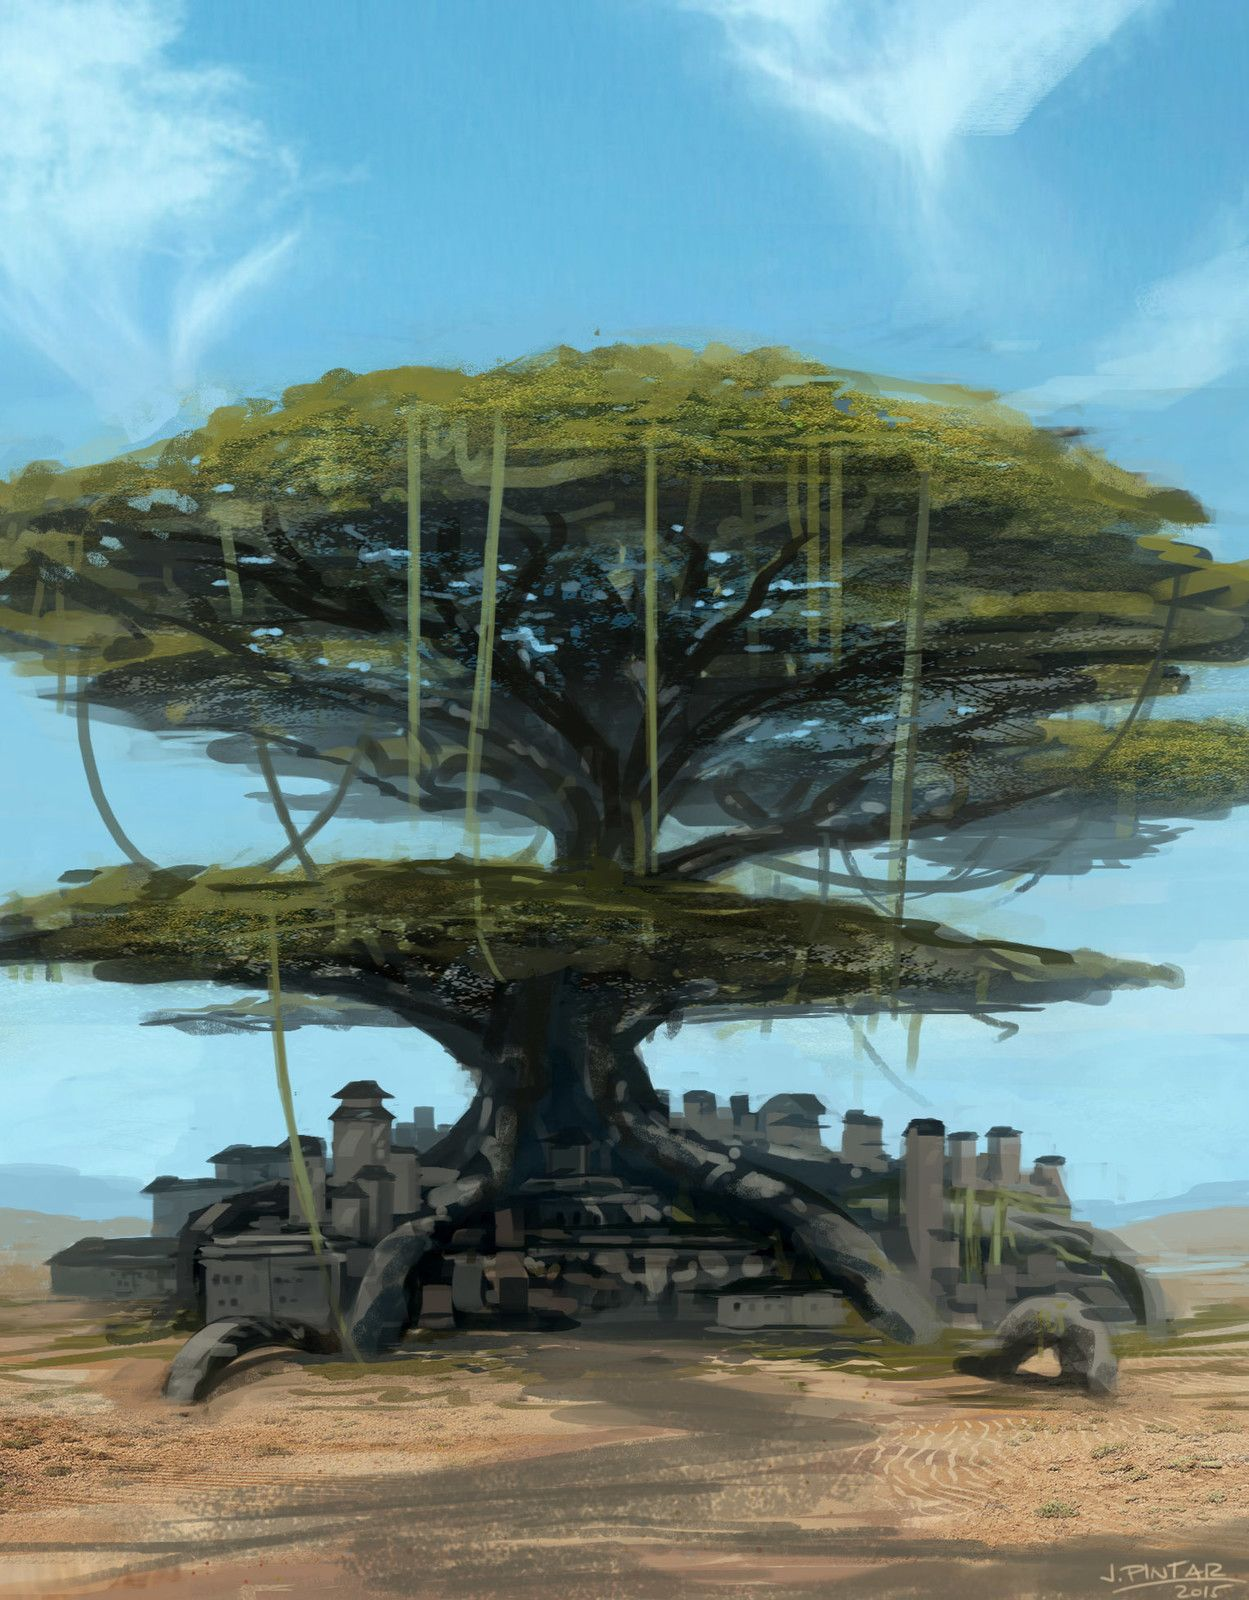 Tree Town, Jon Pintar on ArtStation at https://www.artstation.com/artwork/kZOx6